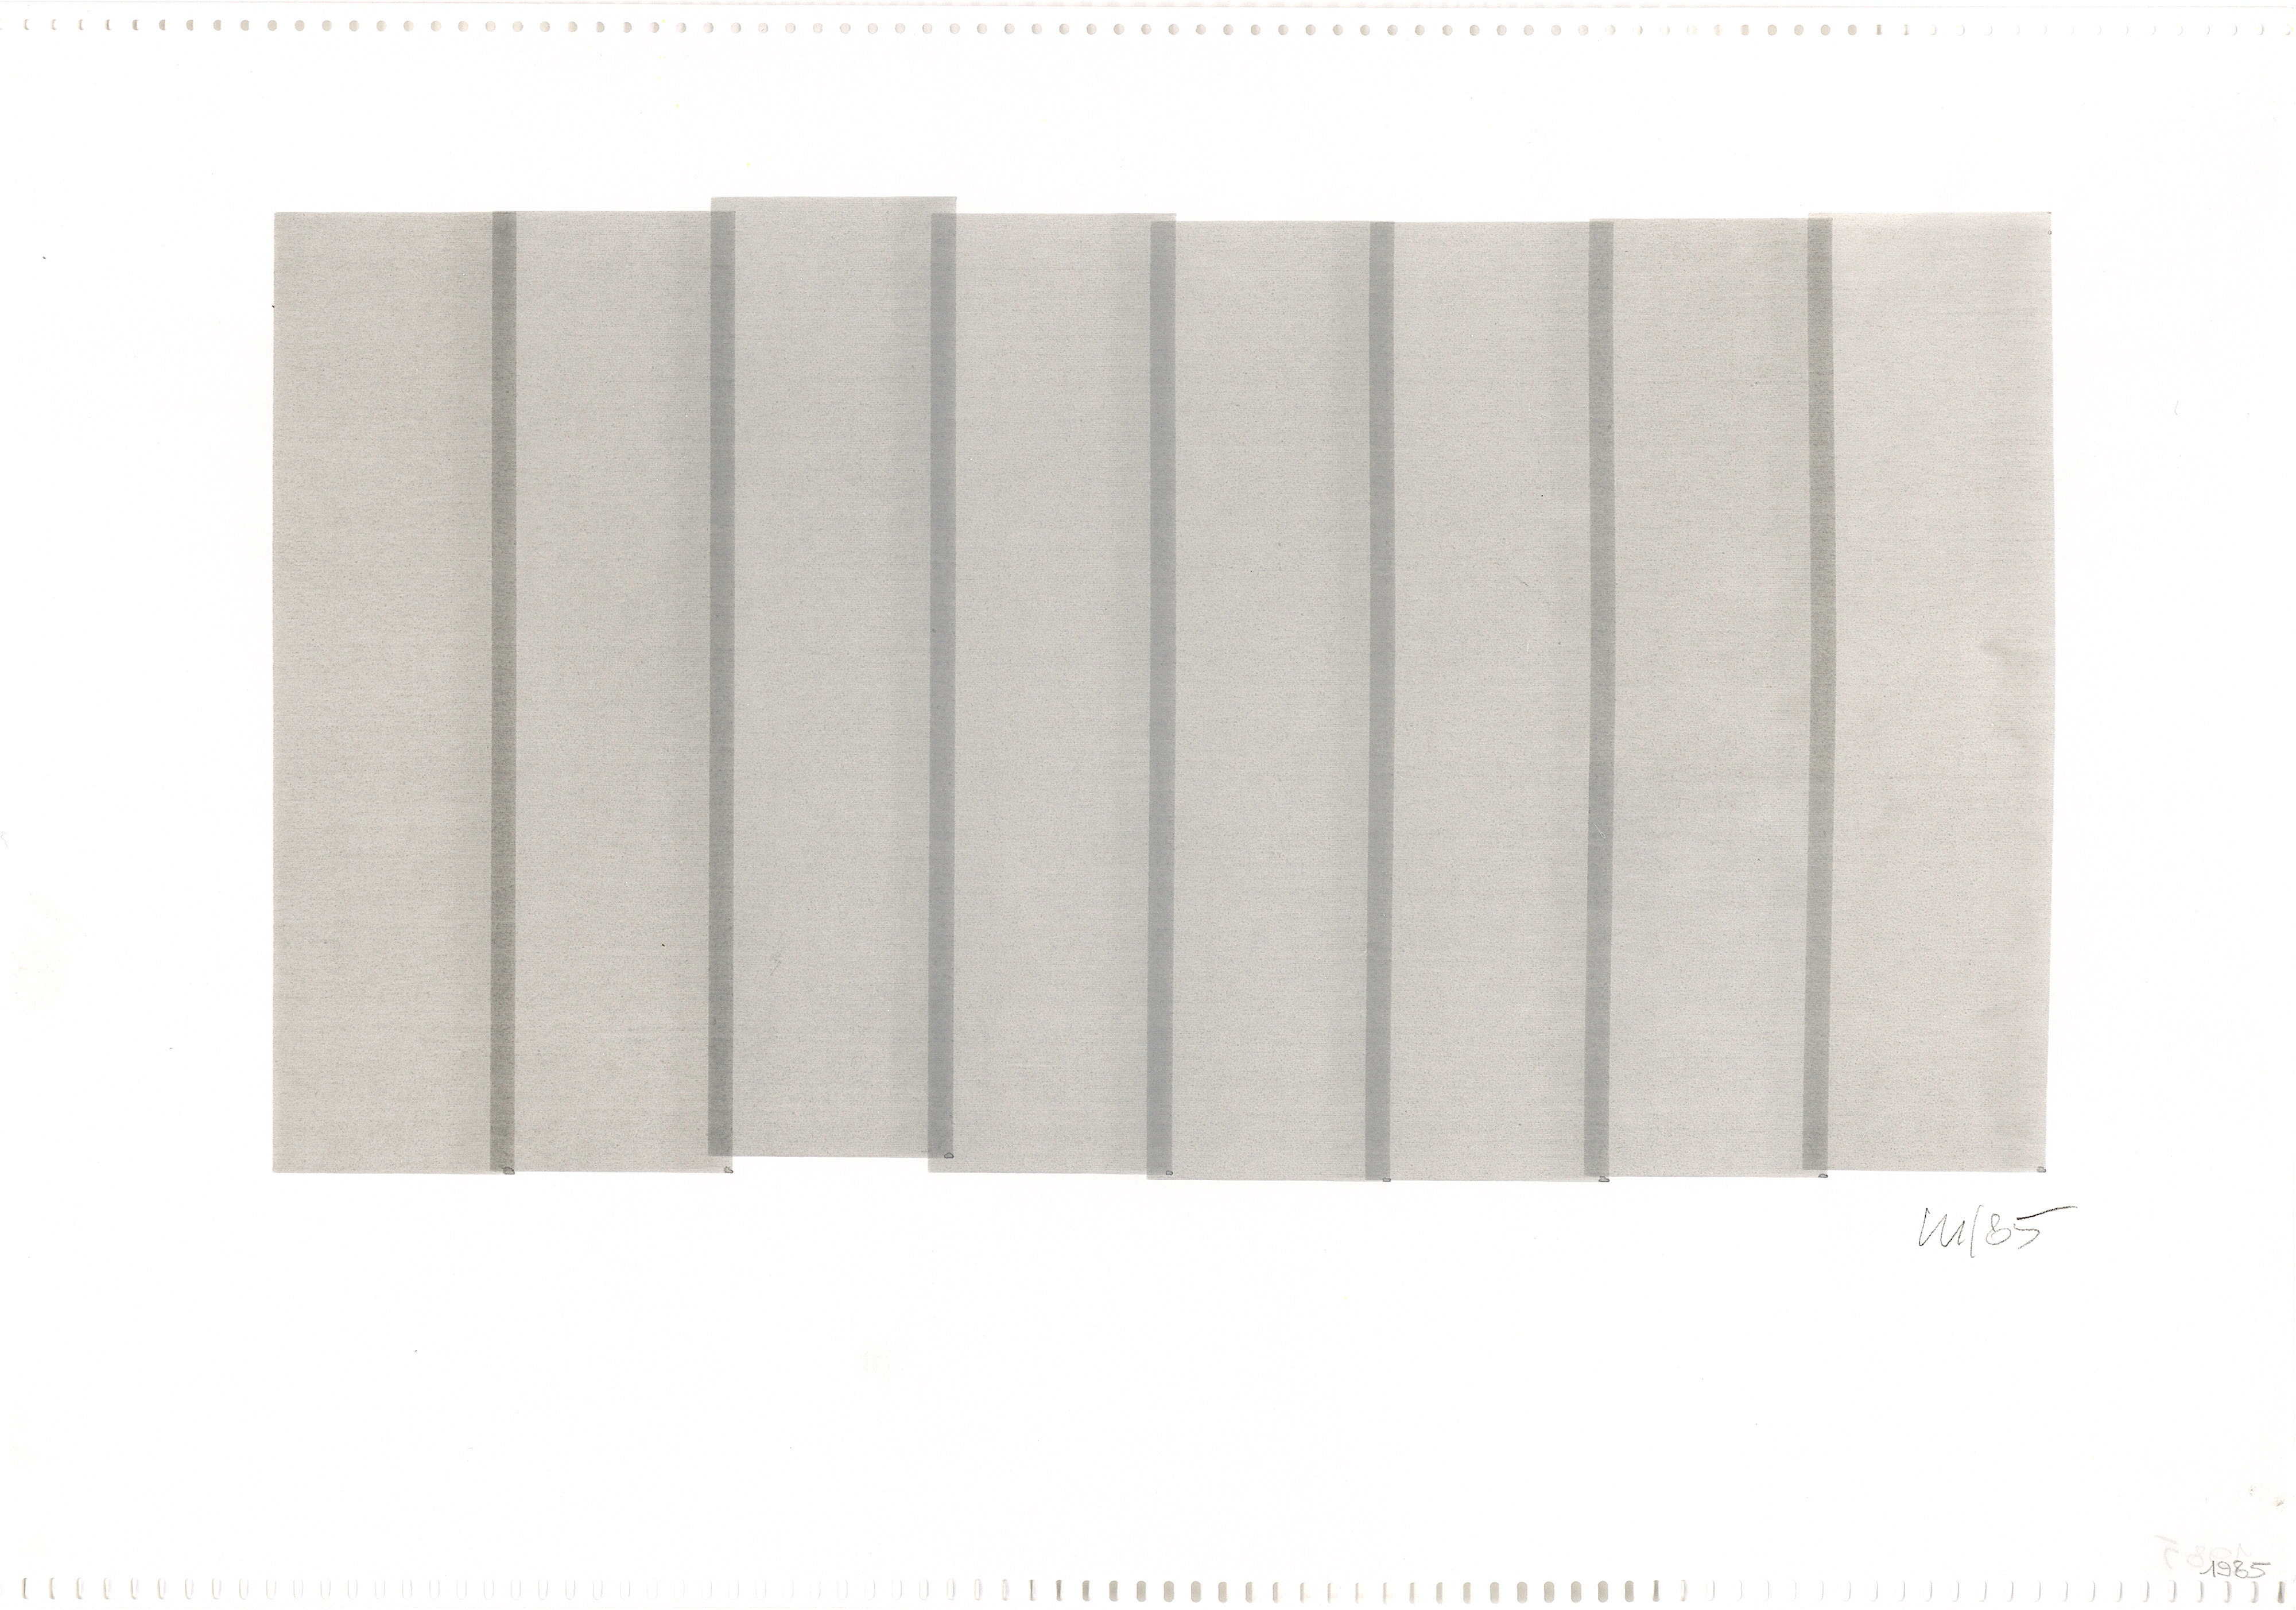 Vera Molnar, 8 Colonnes (vertical), 19 x 33, plotter drawing, ink on paper, 1985